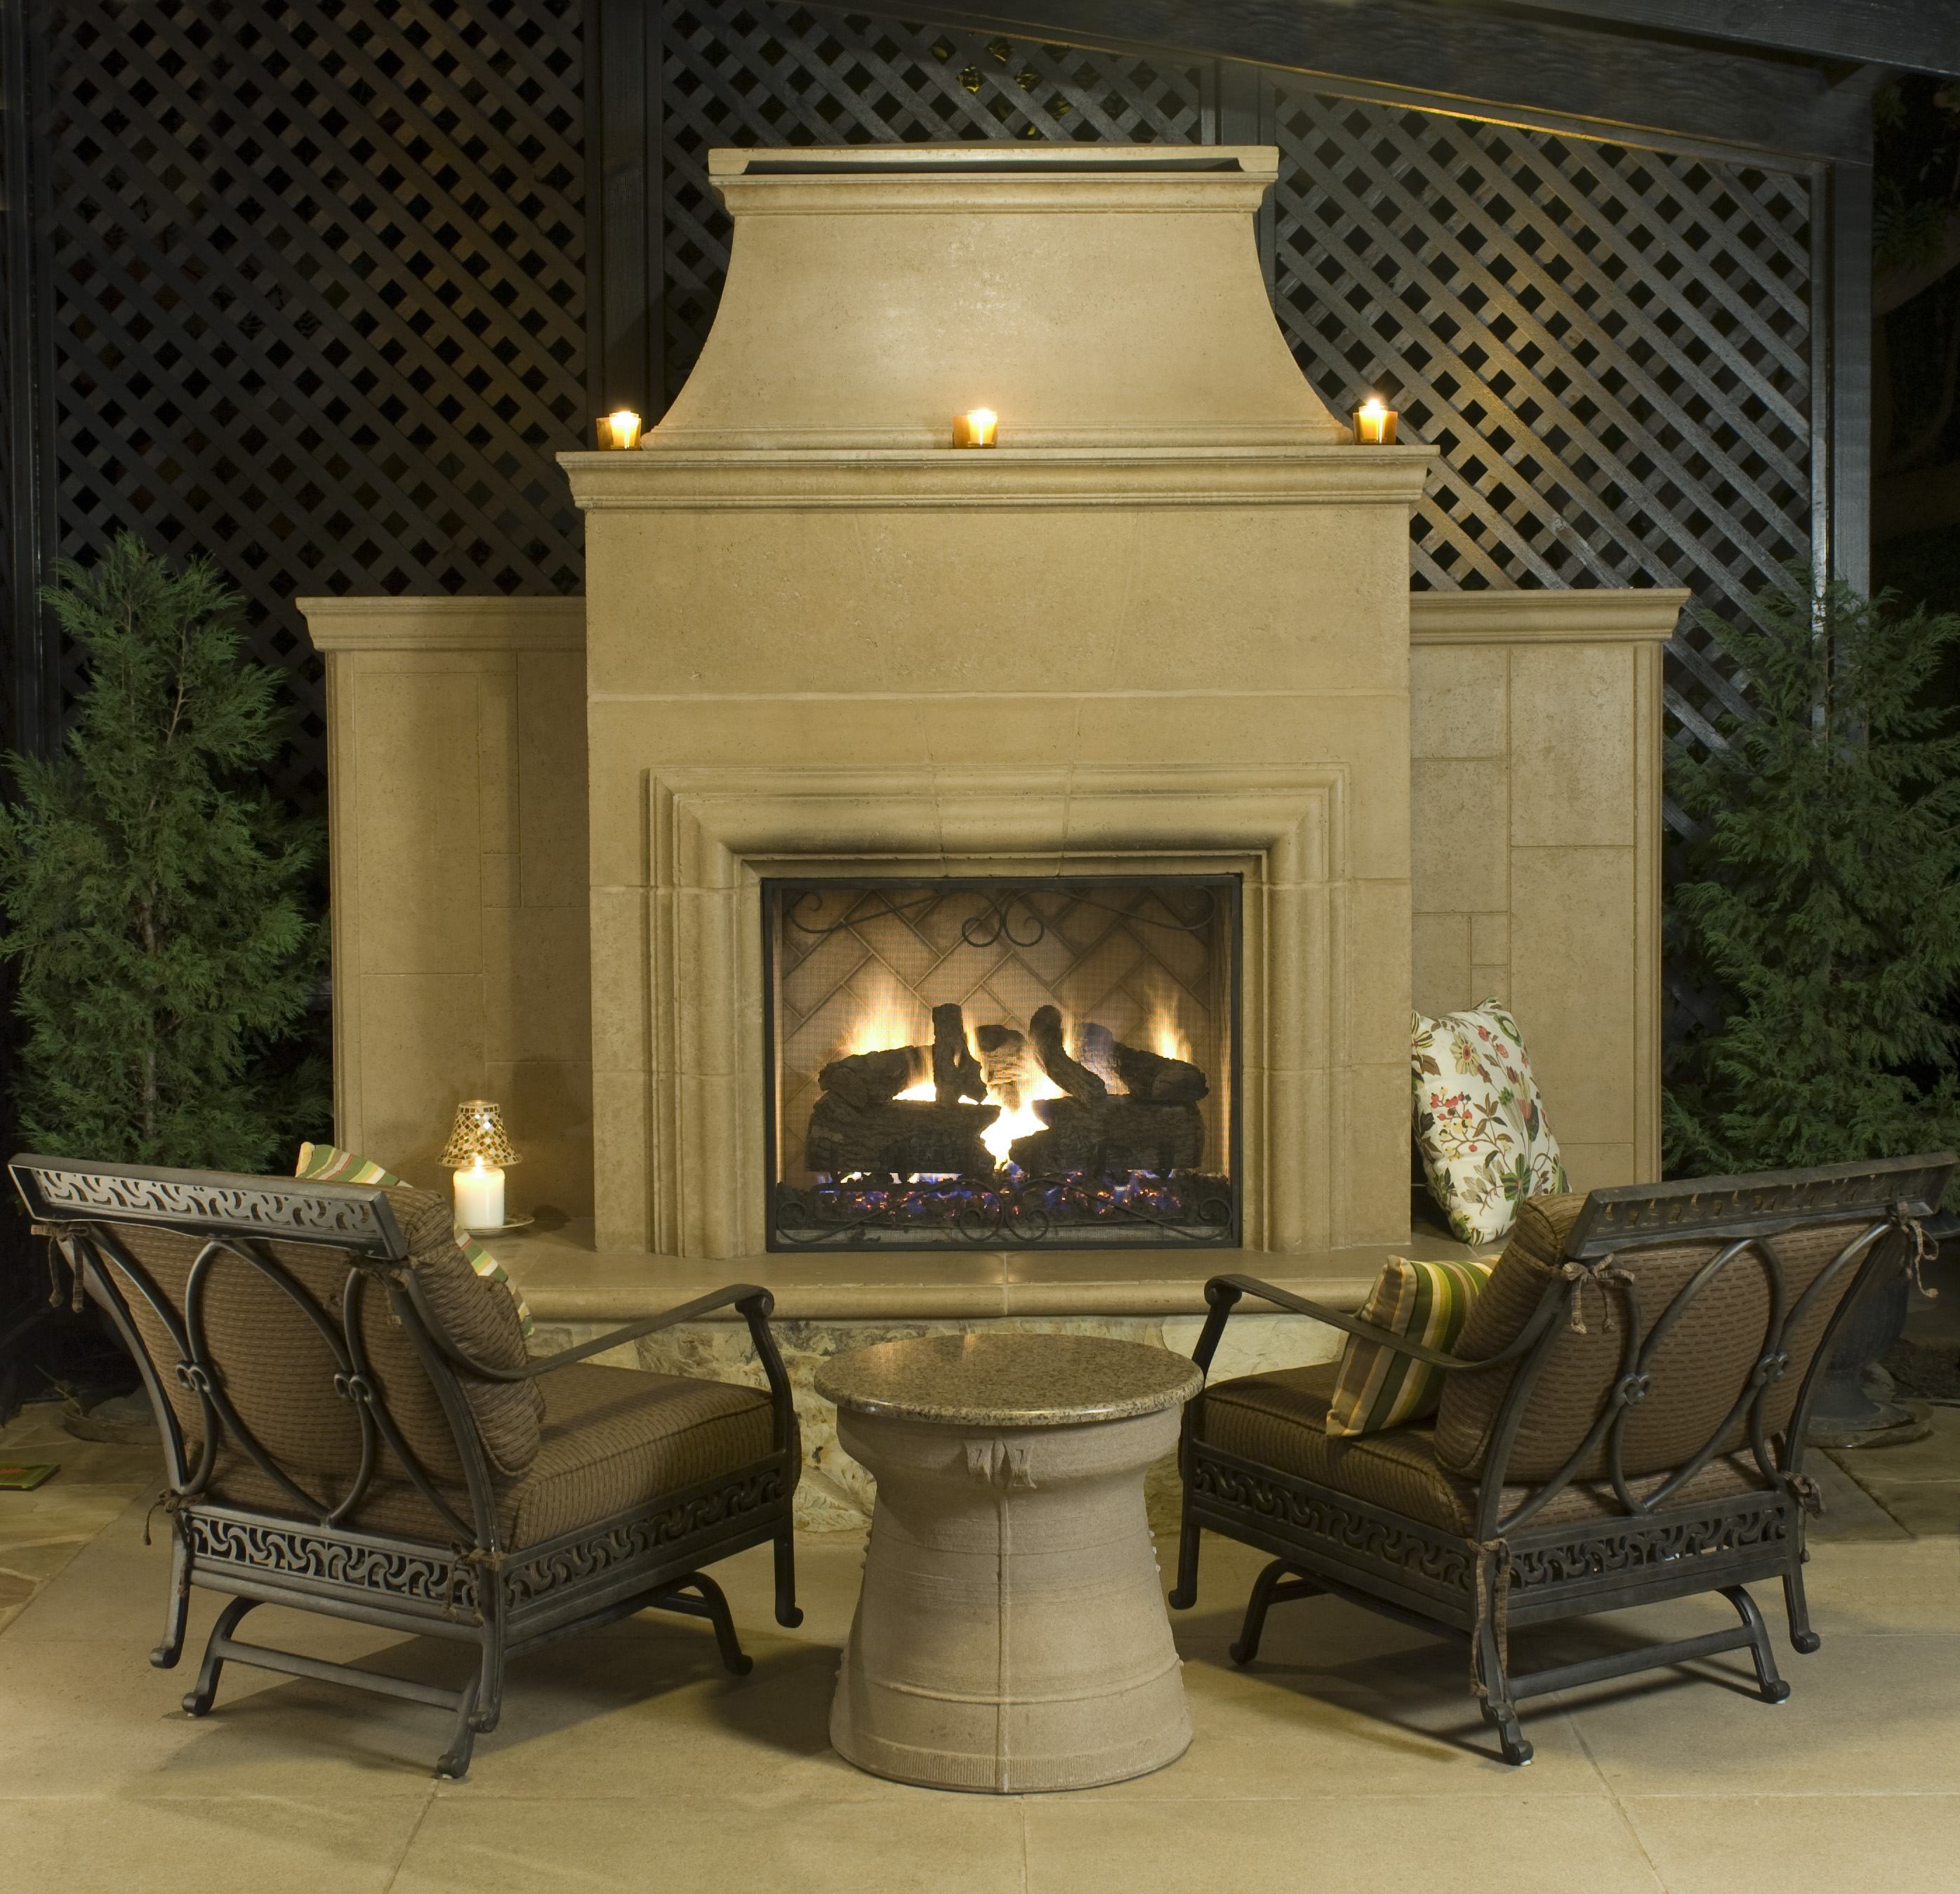 Outdoor Fire Pits Outdoor Fireplaces And Fire Features